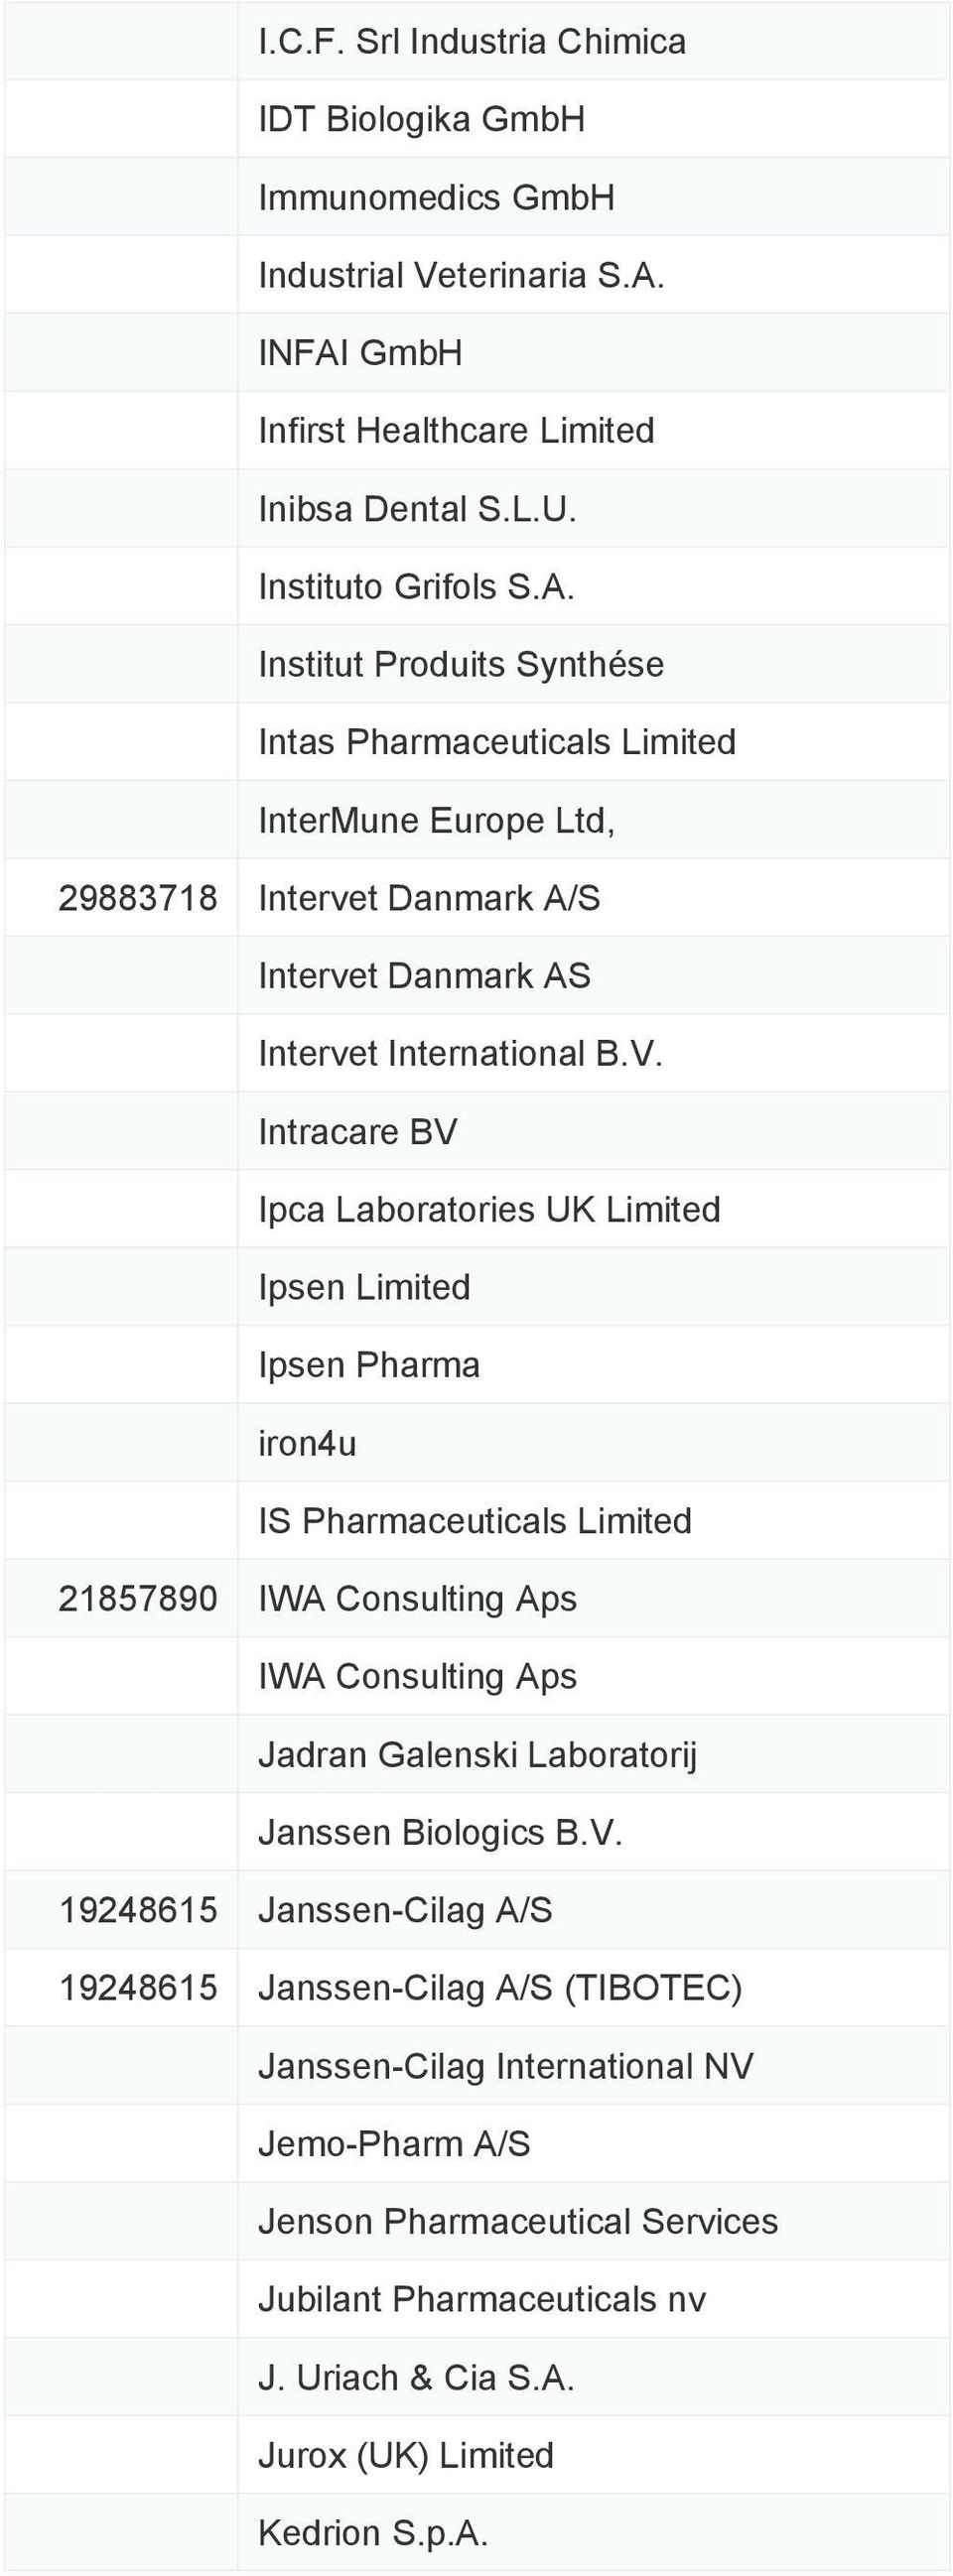 V. Intracare BV Ipca Laboratories UK Limited Ipsen Limited Ipsen Pharma iron4u IS Pharmaceuticals Limited 21857890 IWA Consulting Aps IWA Consulting Aps Jadran Galenski Laboratorij Janssen